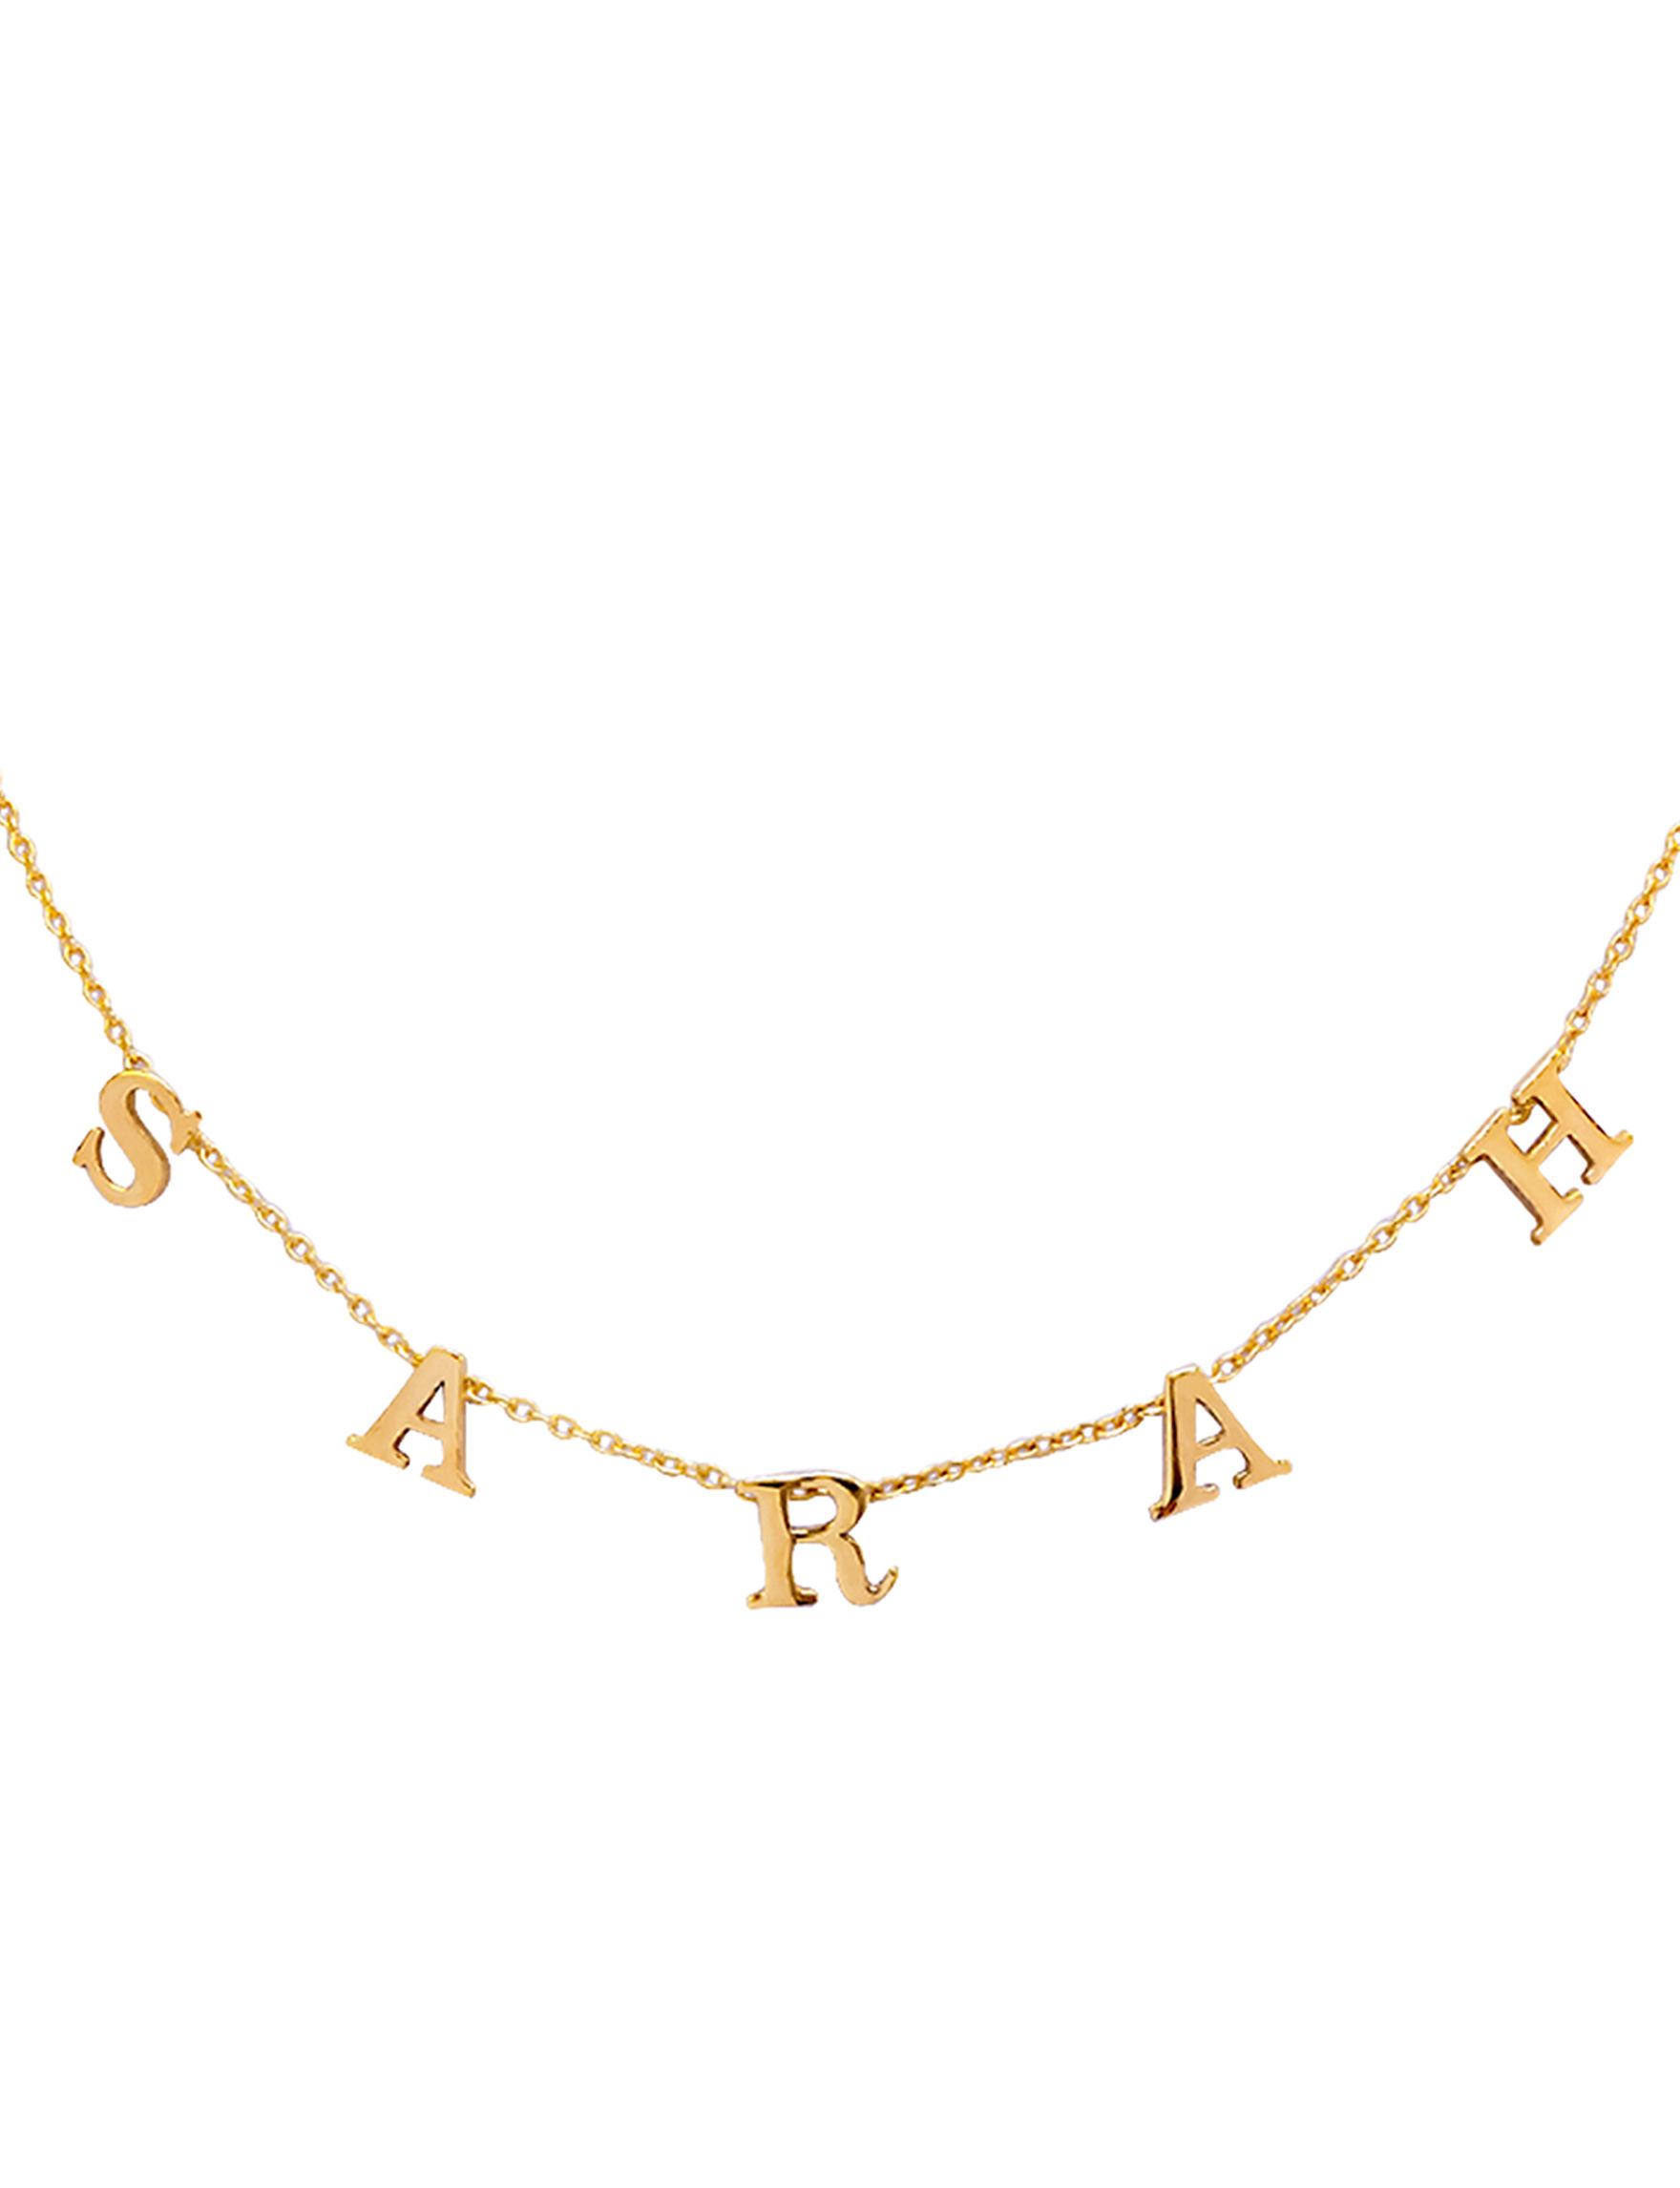 Jay Aimee Gold Necklaces & Pendants Fine Jewelry